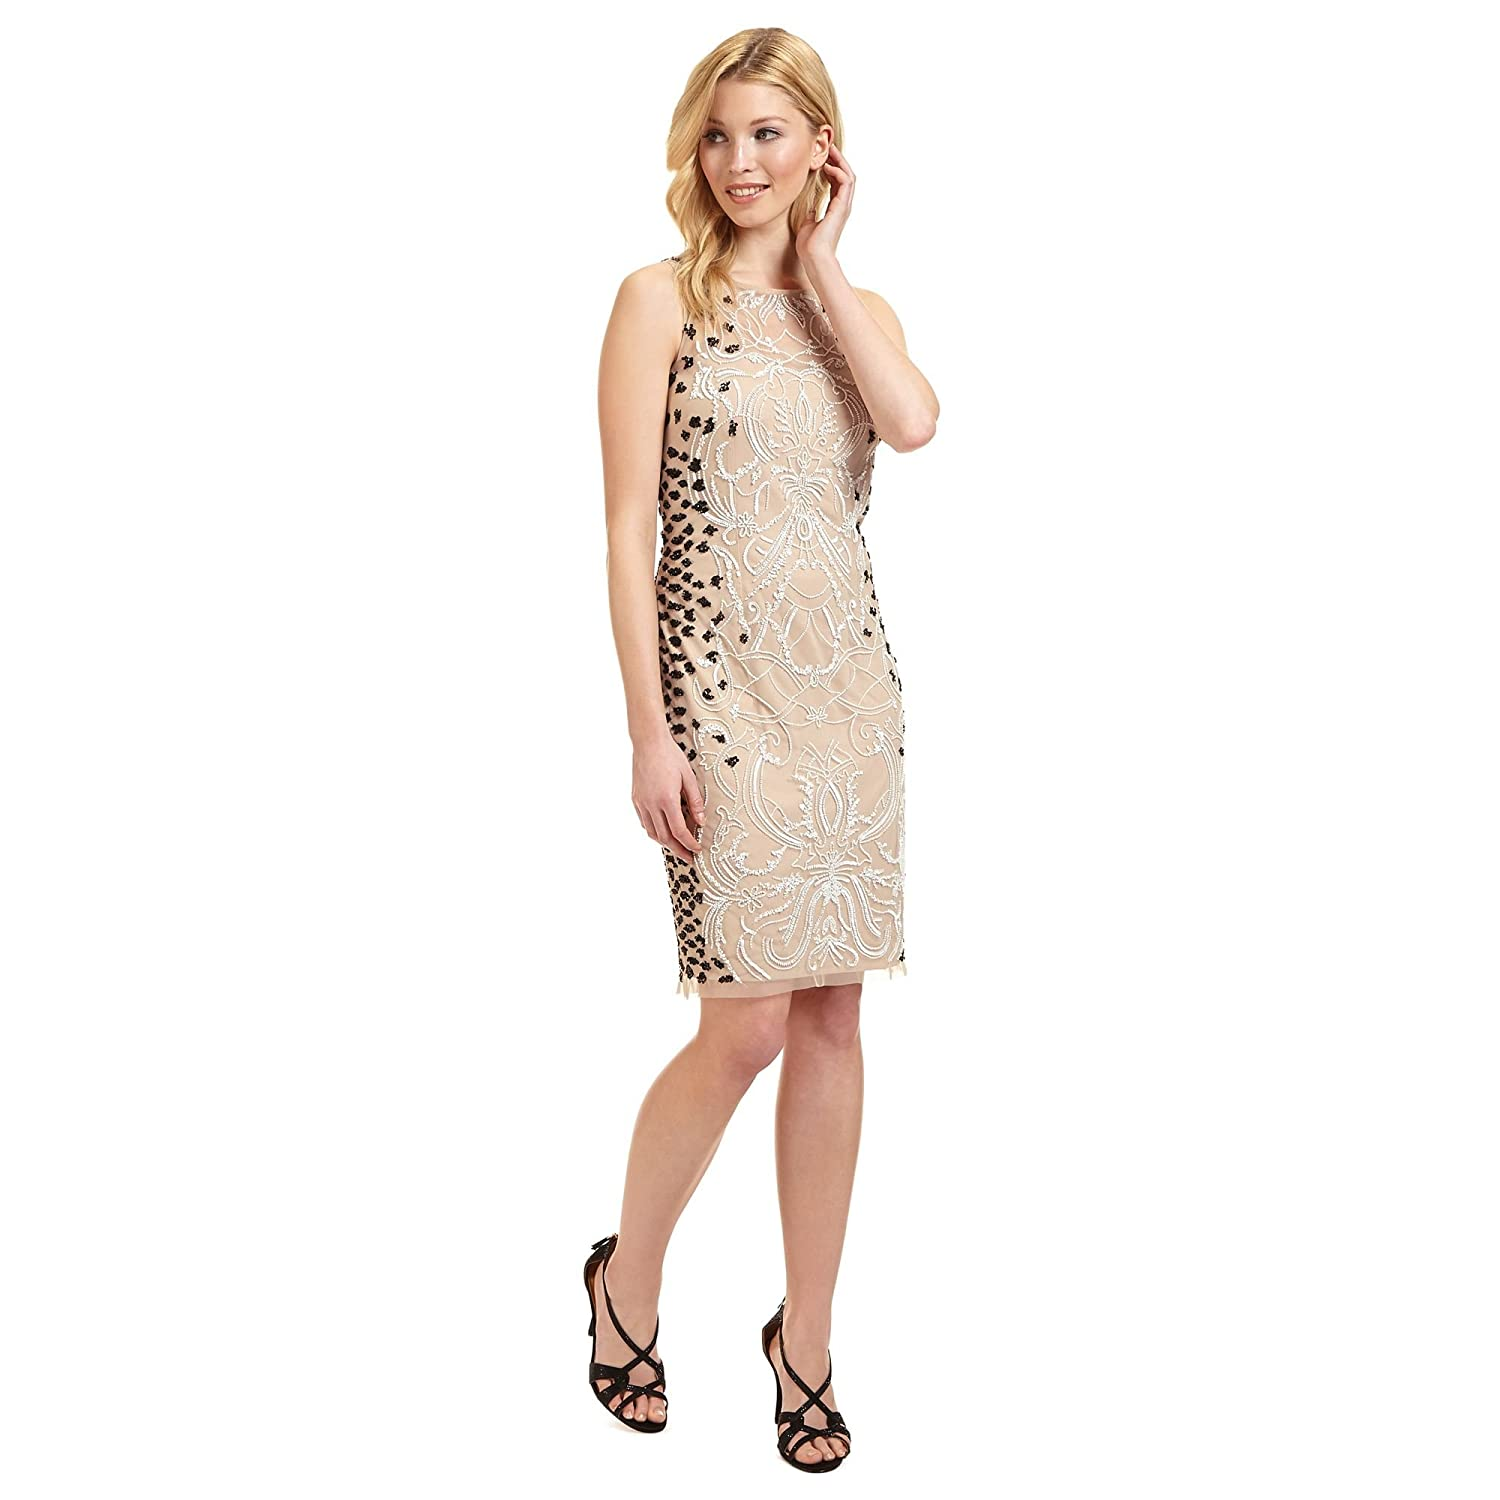 Ariella London Womens Nude 'Dionne' Beaded Dress